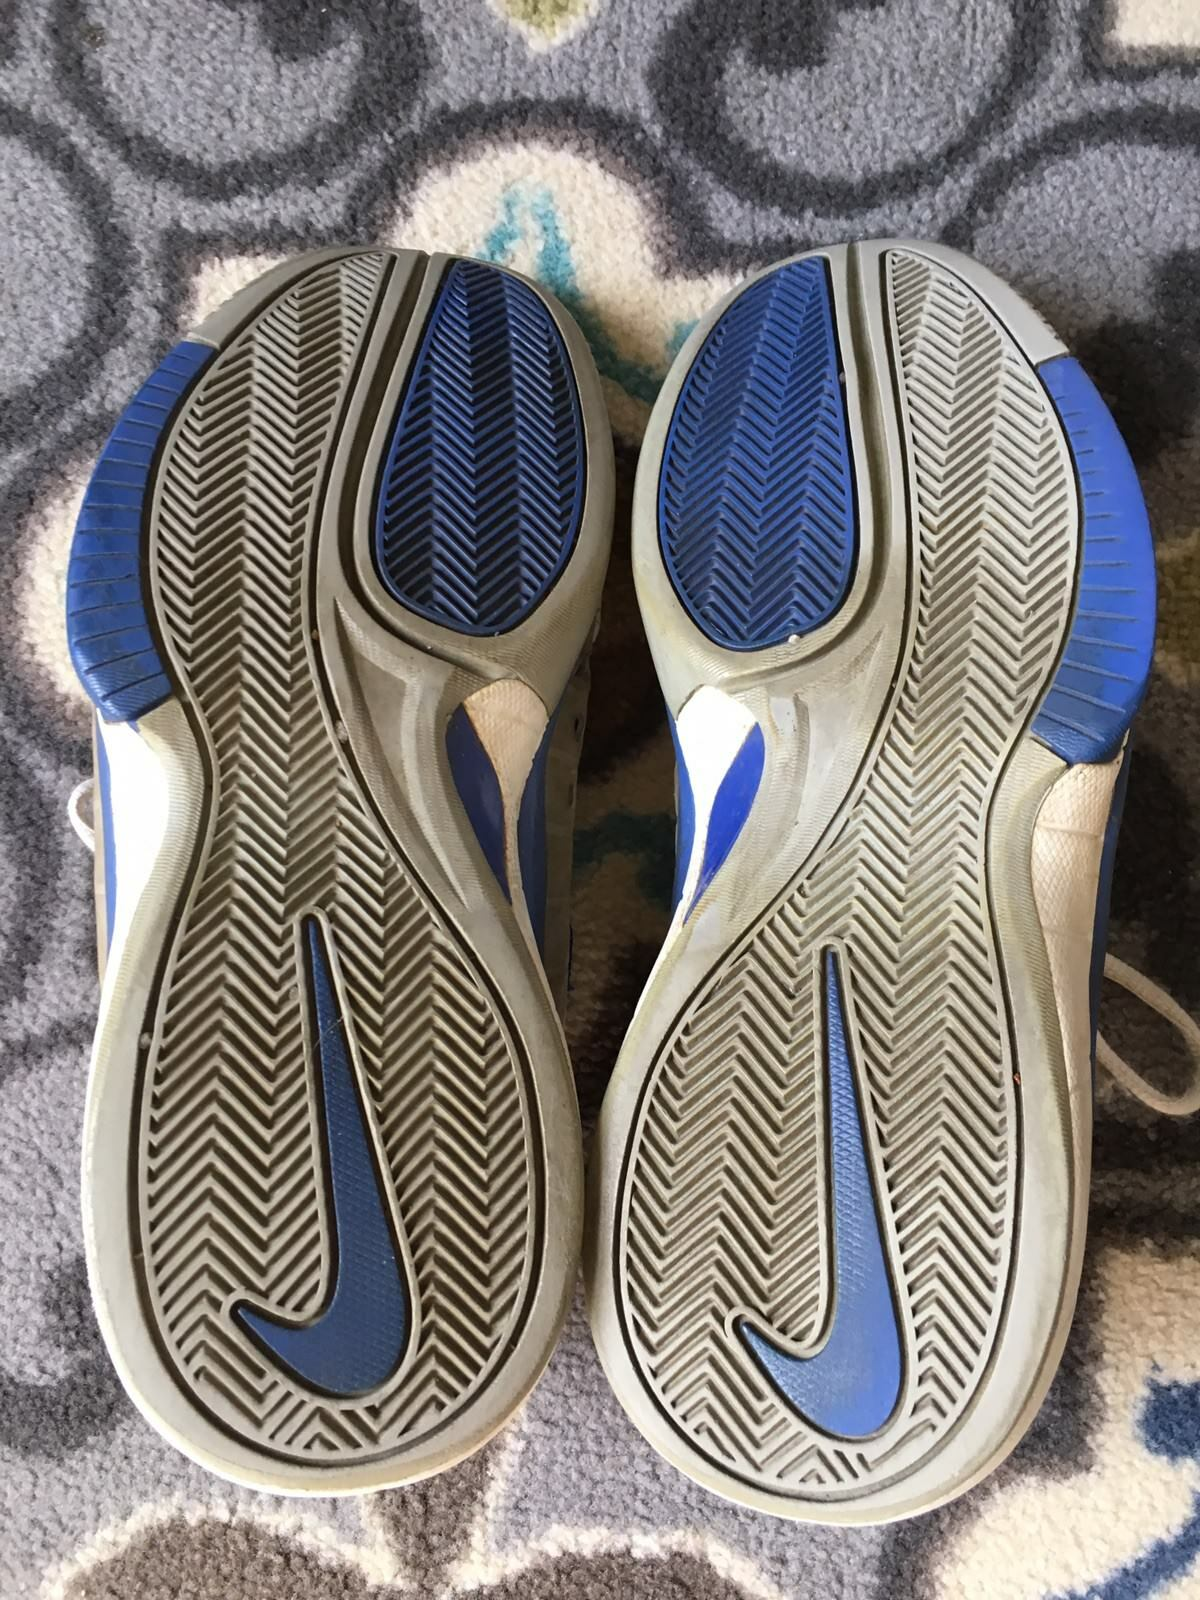 2005 NIKE AIR HUARACHE 2K4 LOW PROMO Mens 10.5 10.5 10.5 Used Basketball Beaters Blue Grey 581ad3